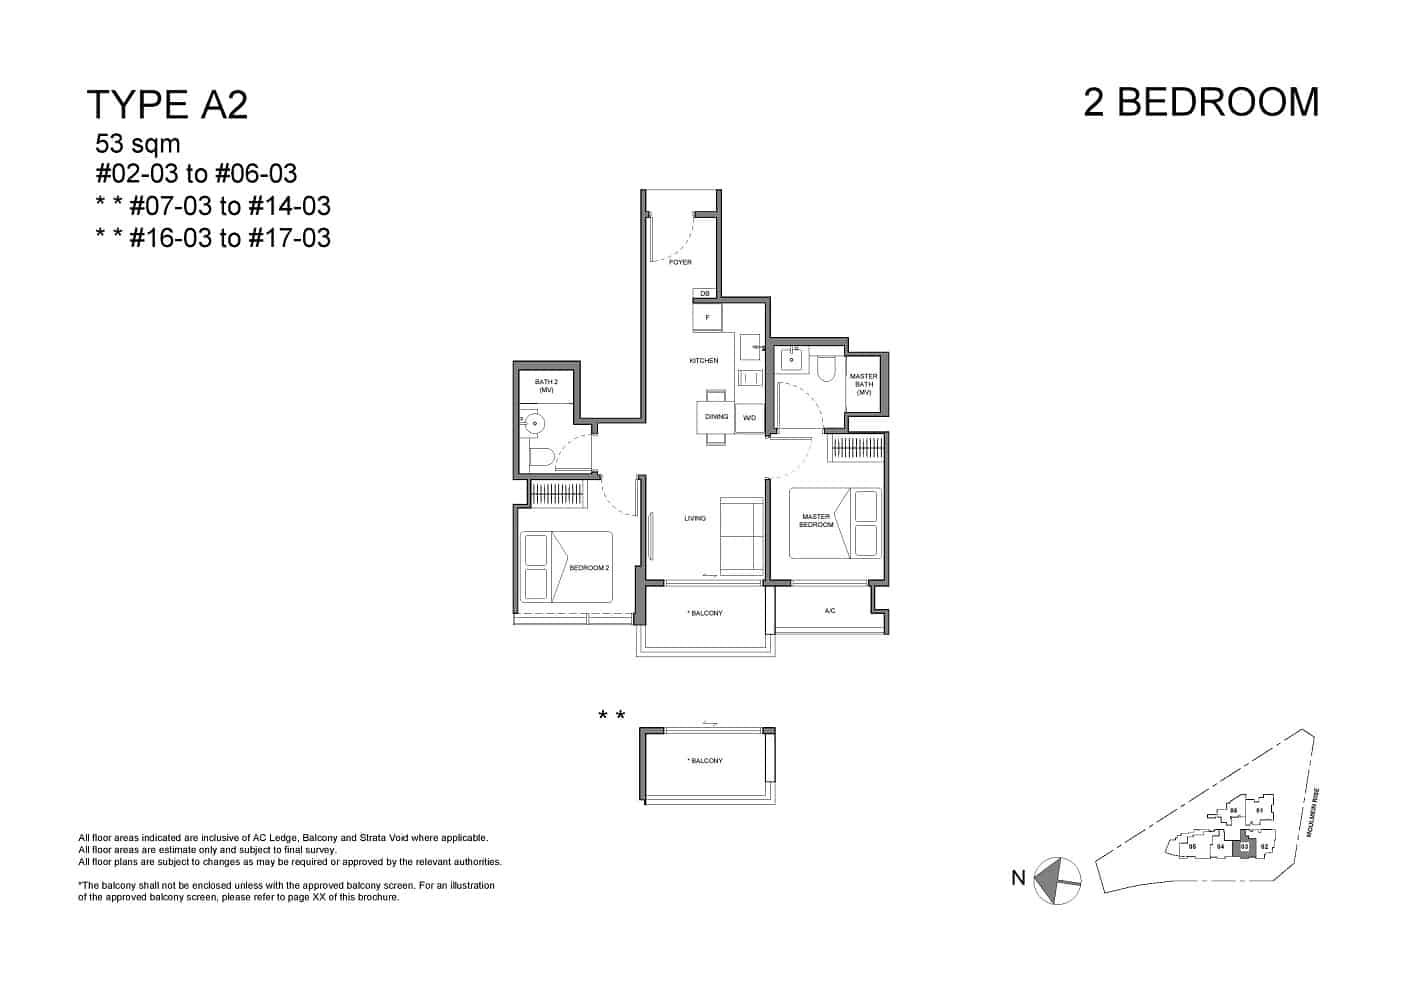 Neu at Novena 2-bedroom type A2